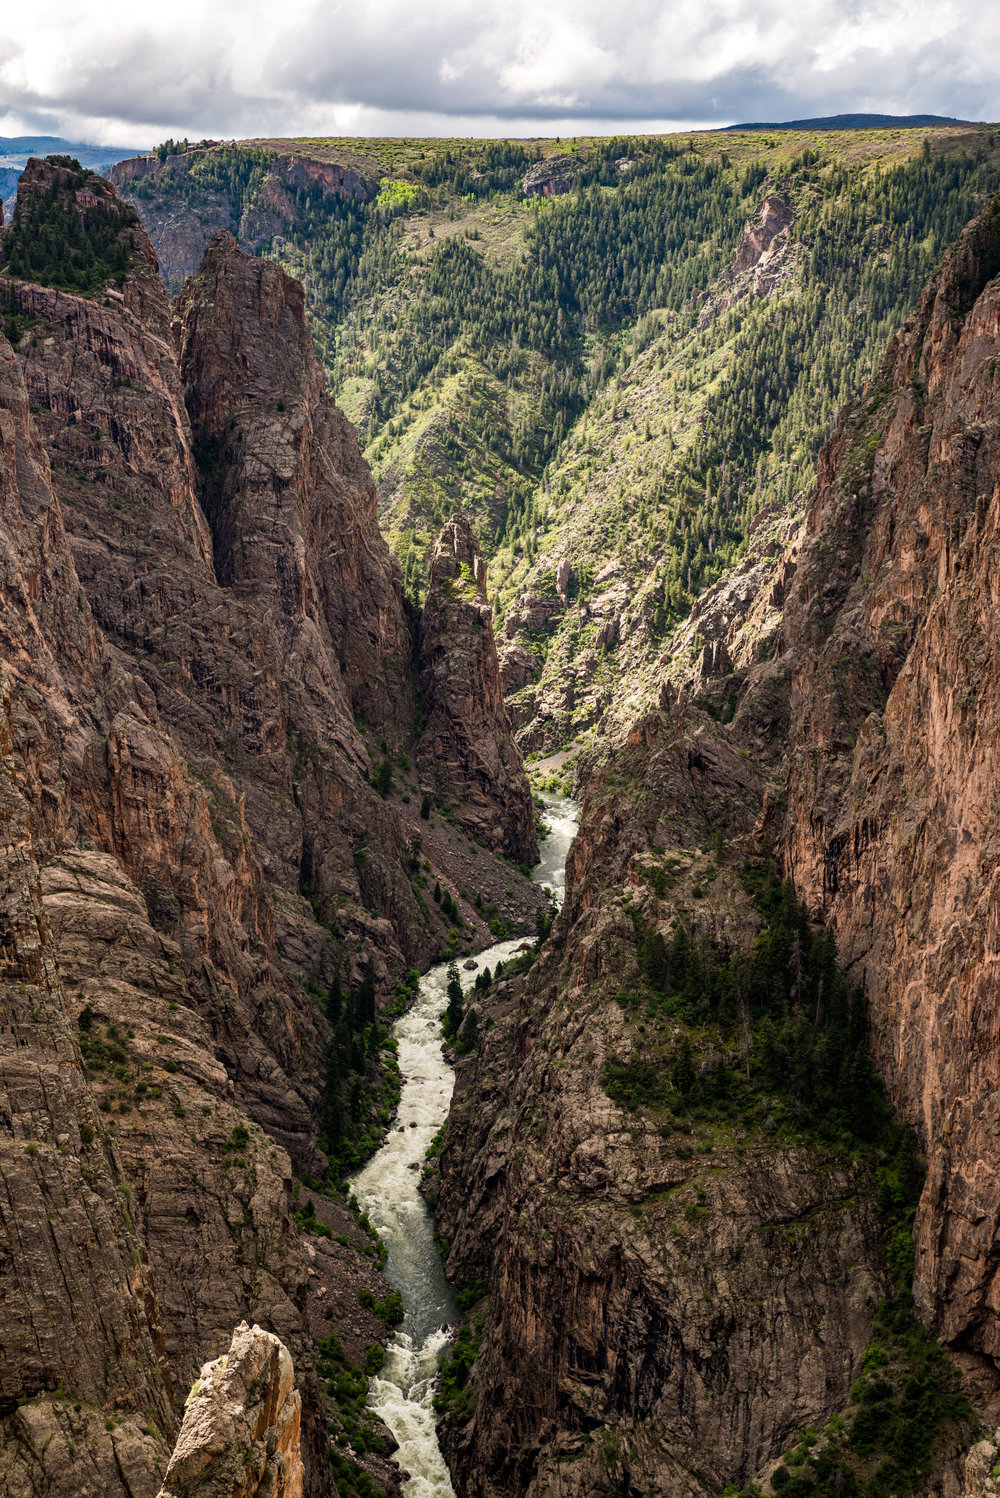 The Gunnison River is currently flowing at 7,000 cfs and is expected to hit 11,000 cfs later this week. The roar of the river can easily be heard 3,000 feet higher from this overlook.